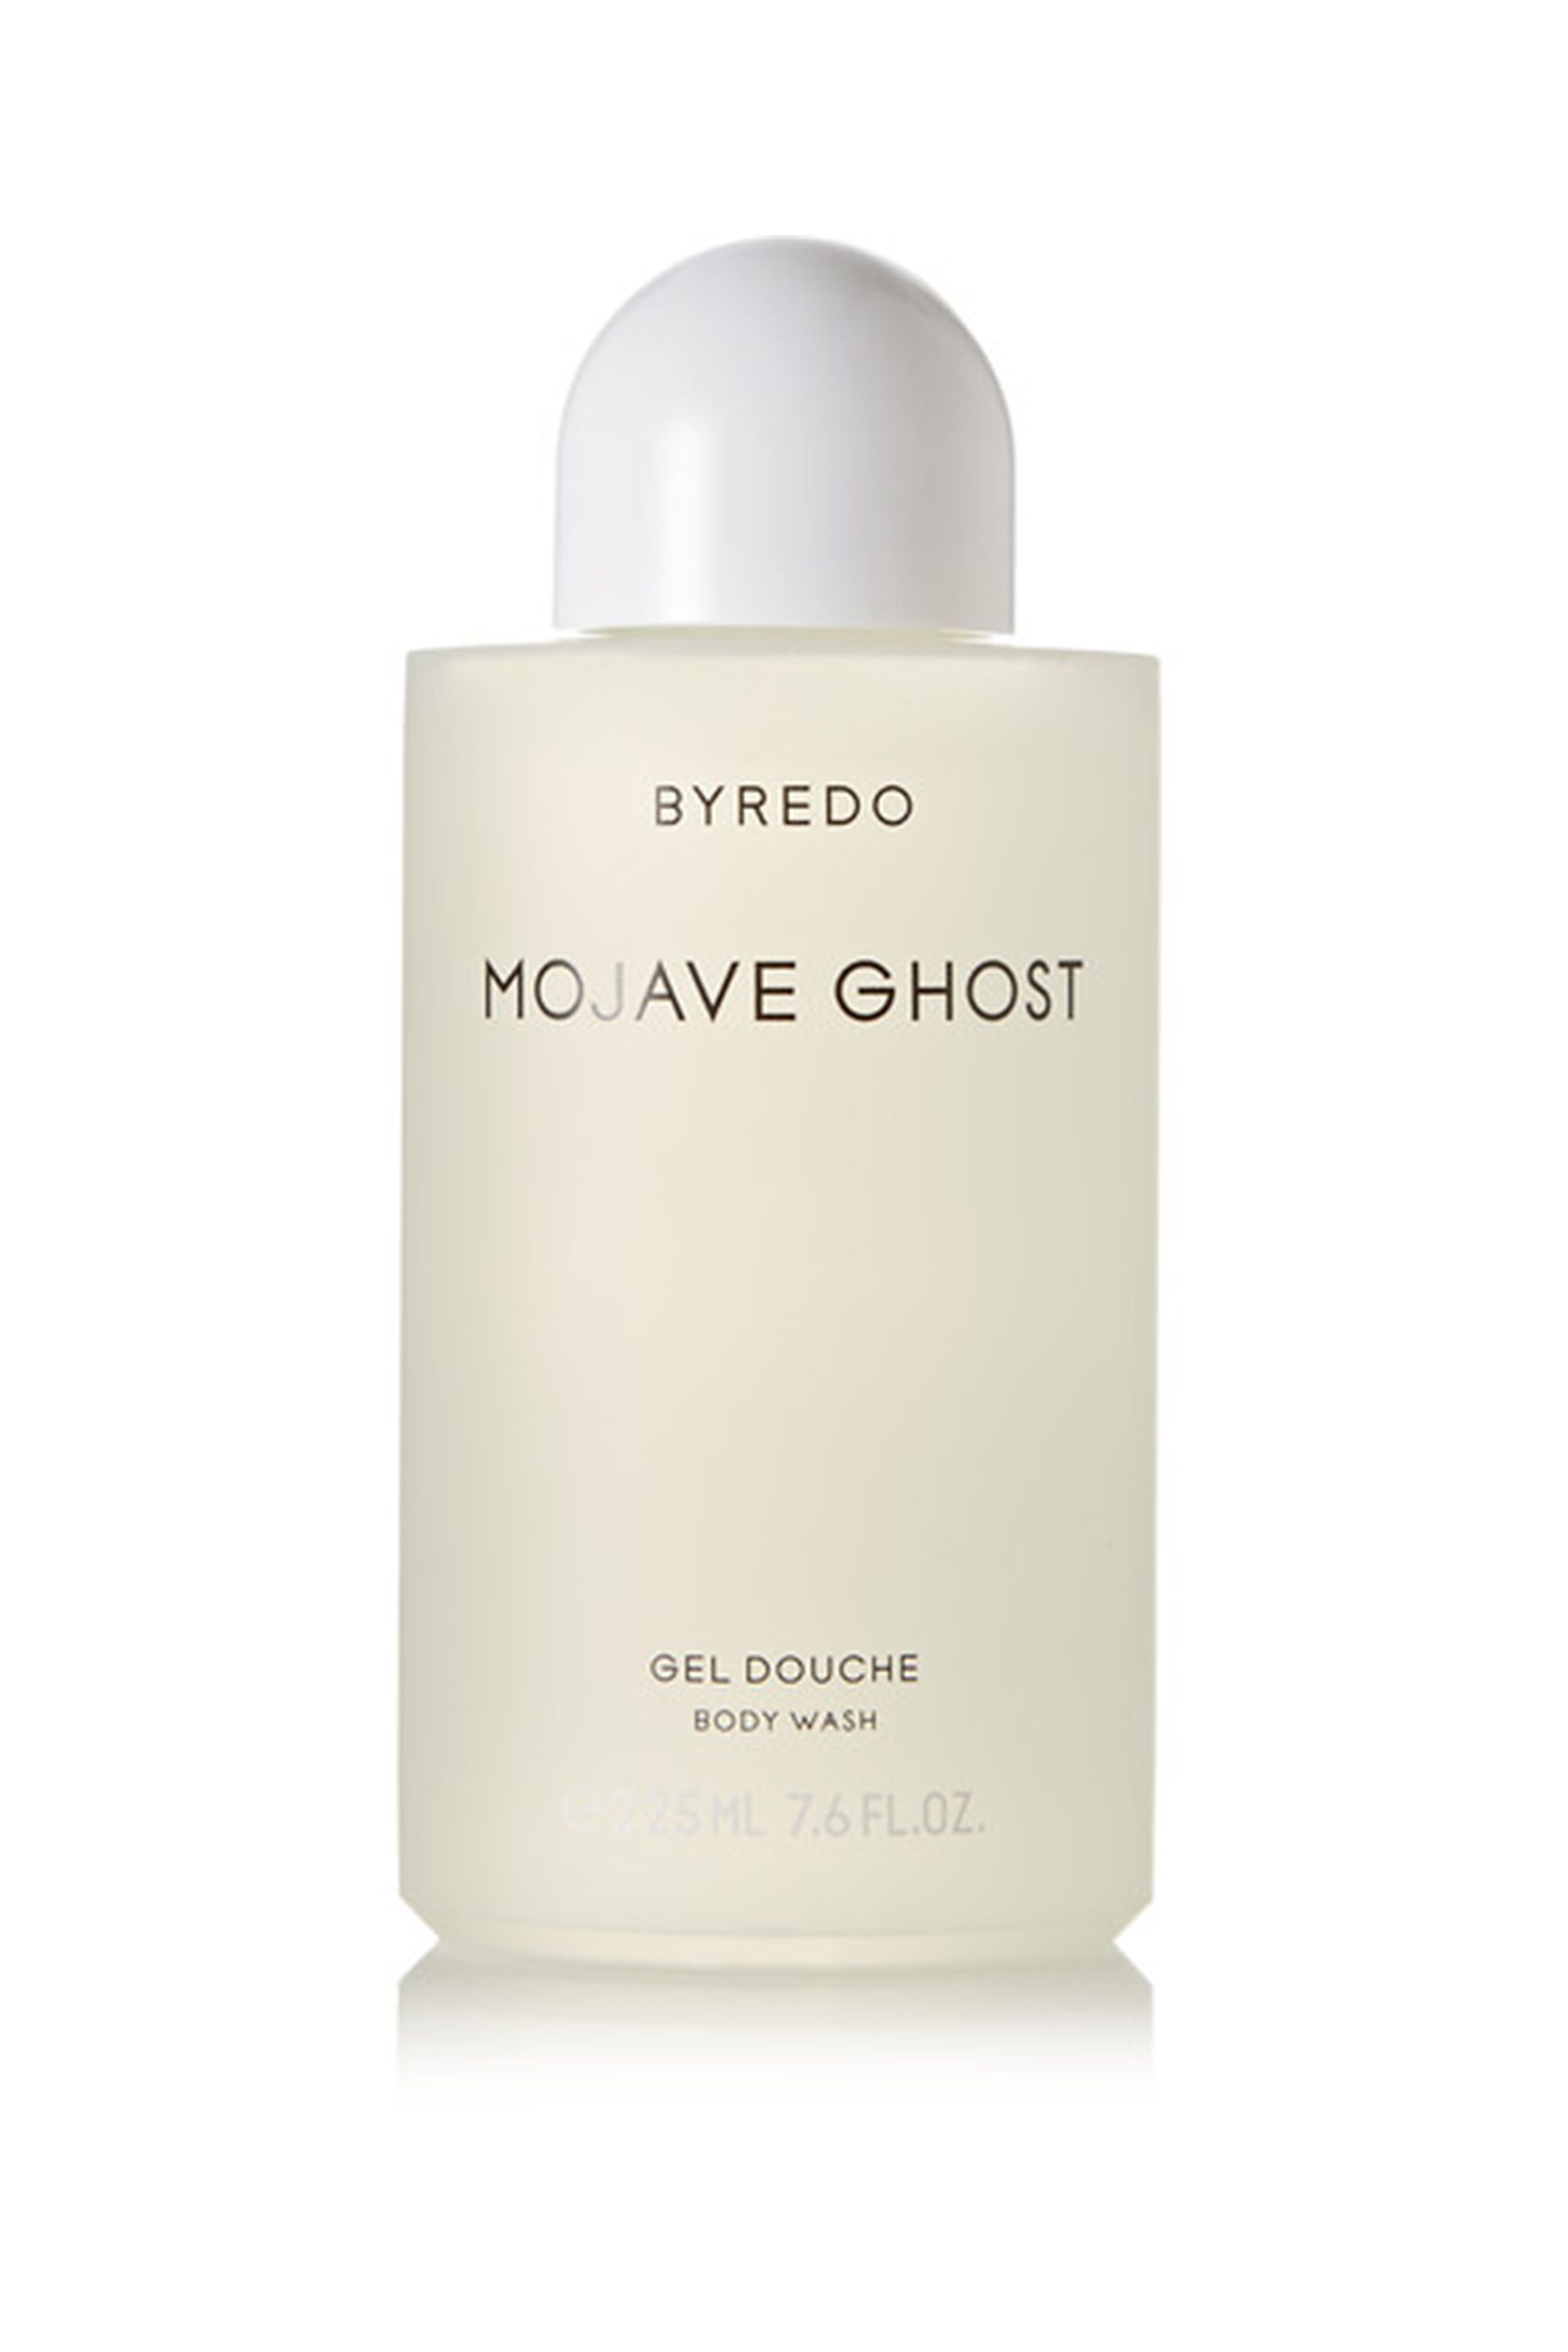 "<p>""According to a study conducted on only myself, fancy shower gel directly impacts my mood. Washing with Byredo's musky Mojave Ghost in the morning (versus the other thing in my shower than smells like a feminine hygiene product) makes me feel like someone who has it together, even in my oven-sized bathroom.""  —Julie Schott, Beauty Director</p><p><em data-redactor-tag=""em"" data-verified=""redactor"">Byredo Shower Gel in Mojave Ghost</em><span class=""redactor-invisible-space"" data-verified=""redactor"" data-redactor-tag=""span"" data-redactor-class=""redactor-invisible-space""><em data-redactor-tag=""em"" data-verified=""redactor"">, $50; </em><a href=""https://www.net-a-porter.com/us/en/product/821913"" data-tracking-id=""recirc-text-link"" target=""_blank""><em data-redactor-tag=""em"" data-verified=""redactor"">net-a-porter.com</em></a></span></p>"